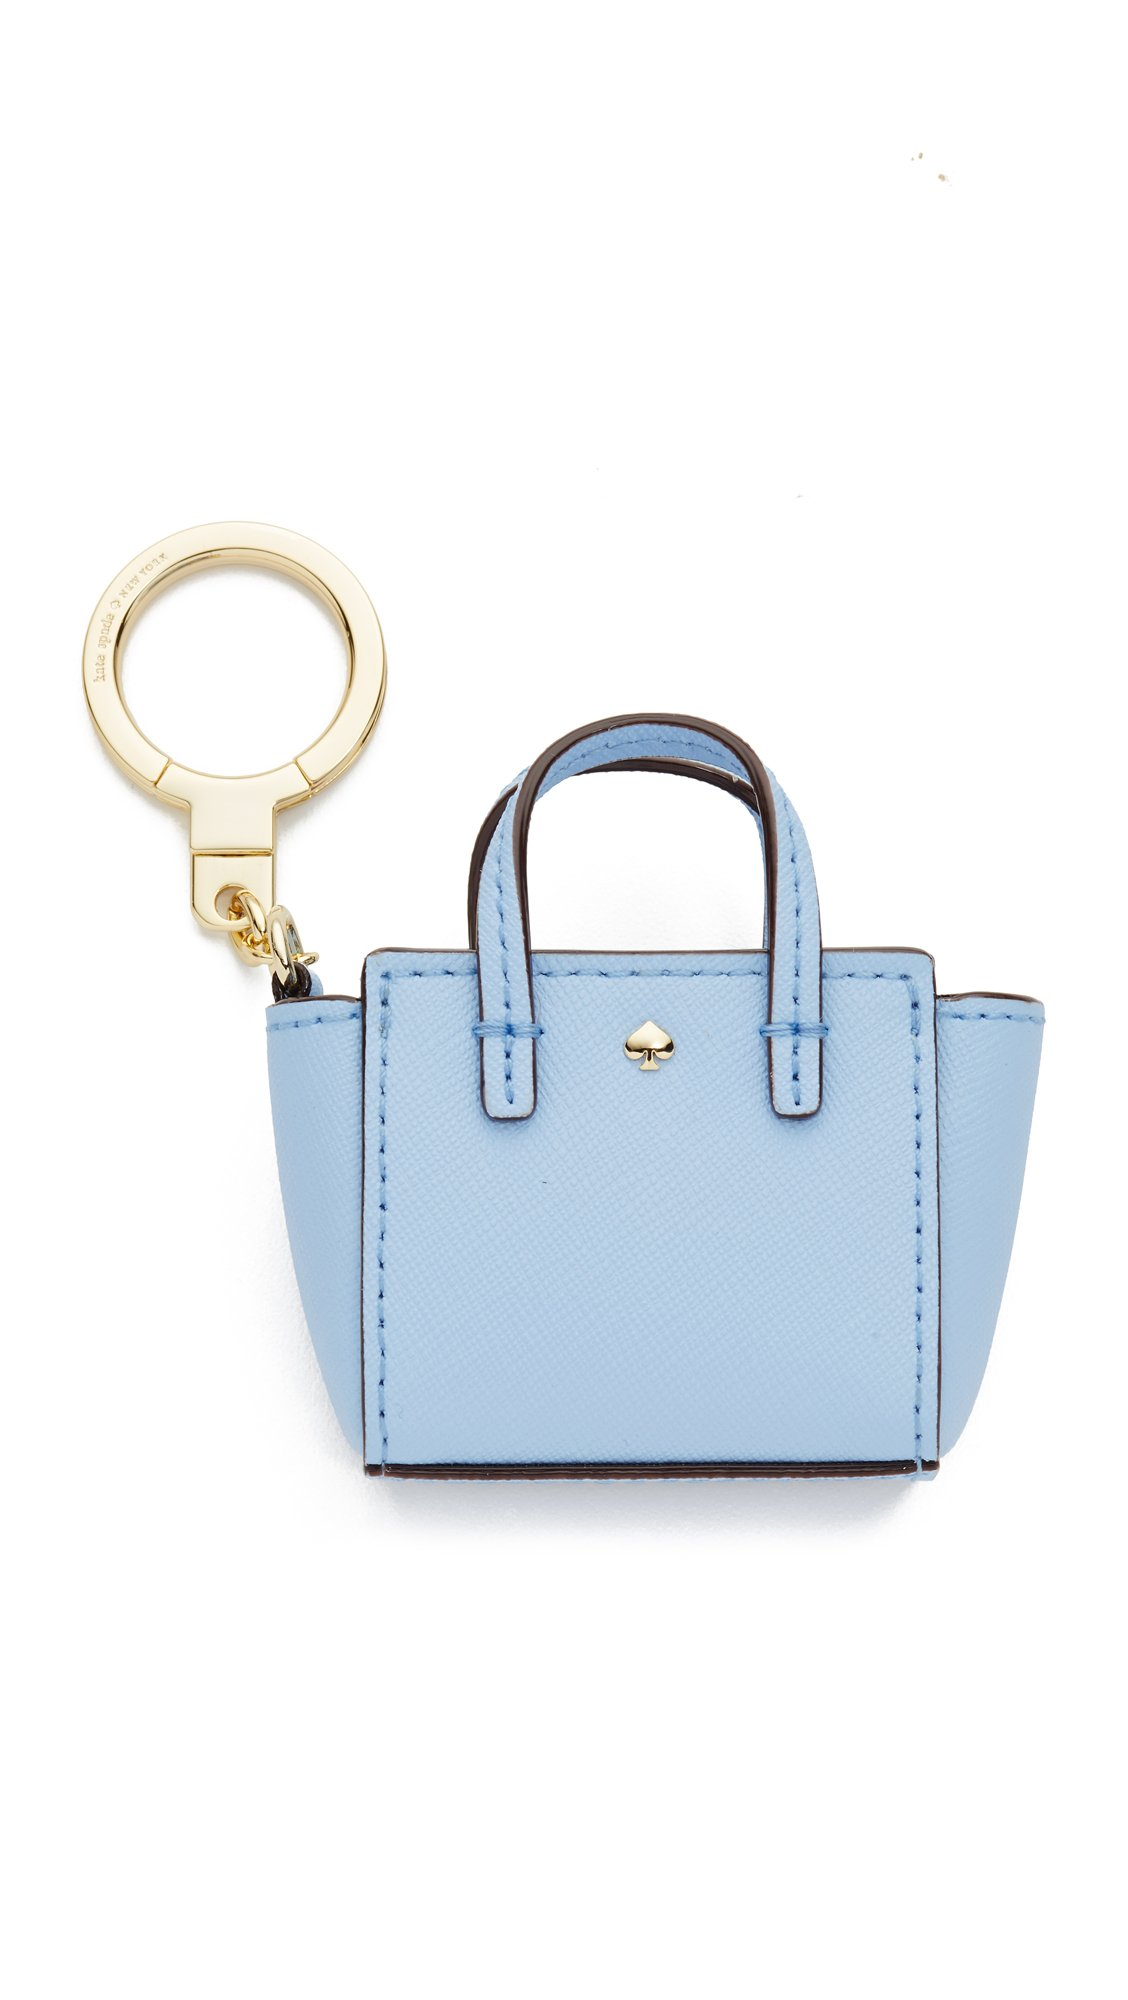 Kate Spade New York Women's Mini Hayden Keychain, Sky Blue, One Size